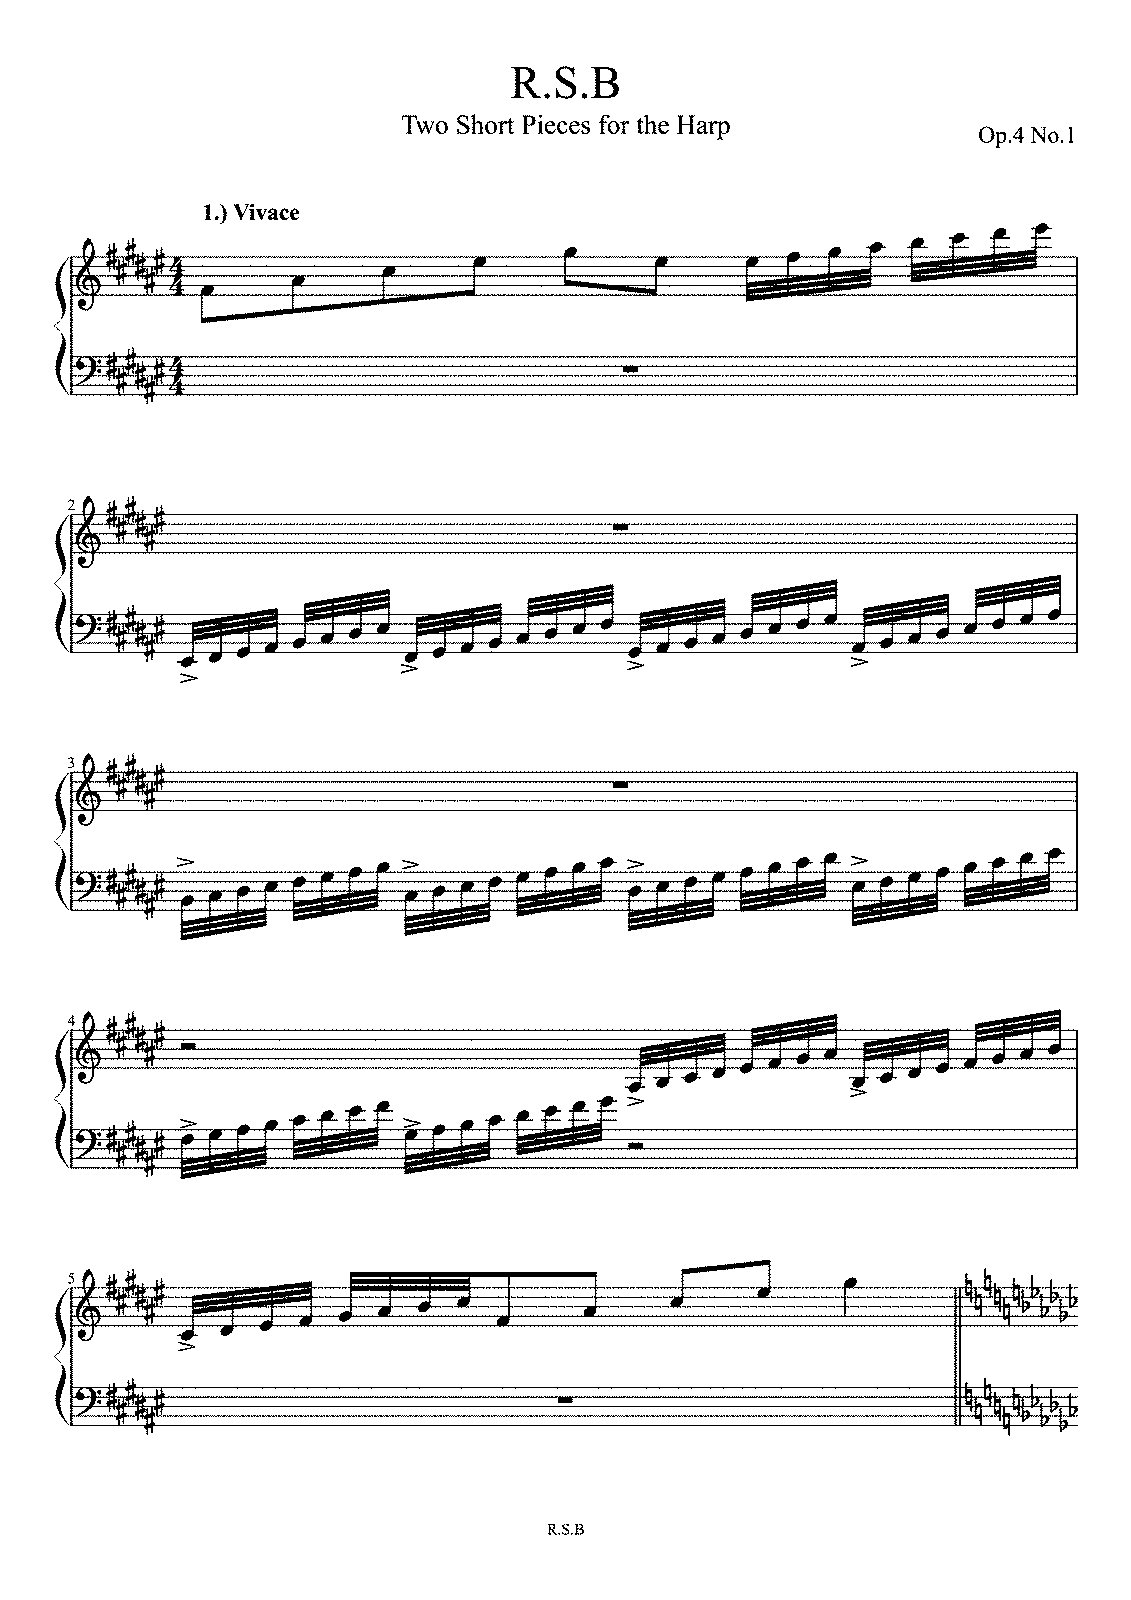 PMLP227066-Pieces For Harp (RSB).pdf